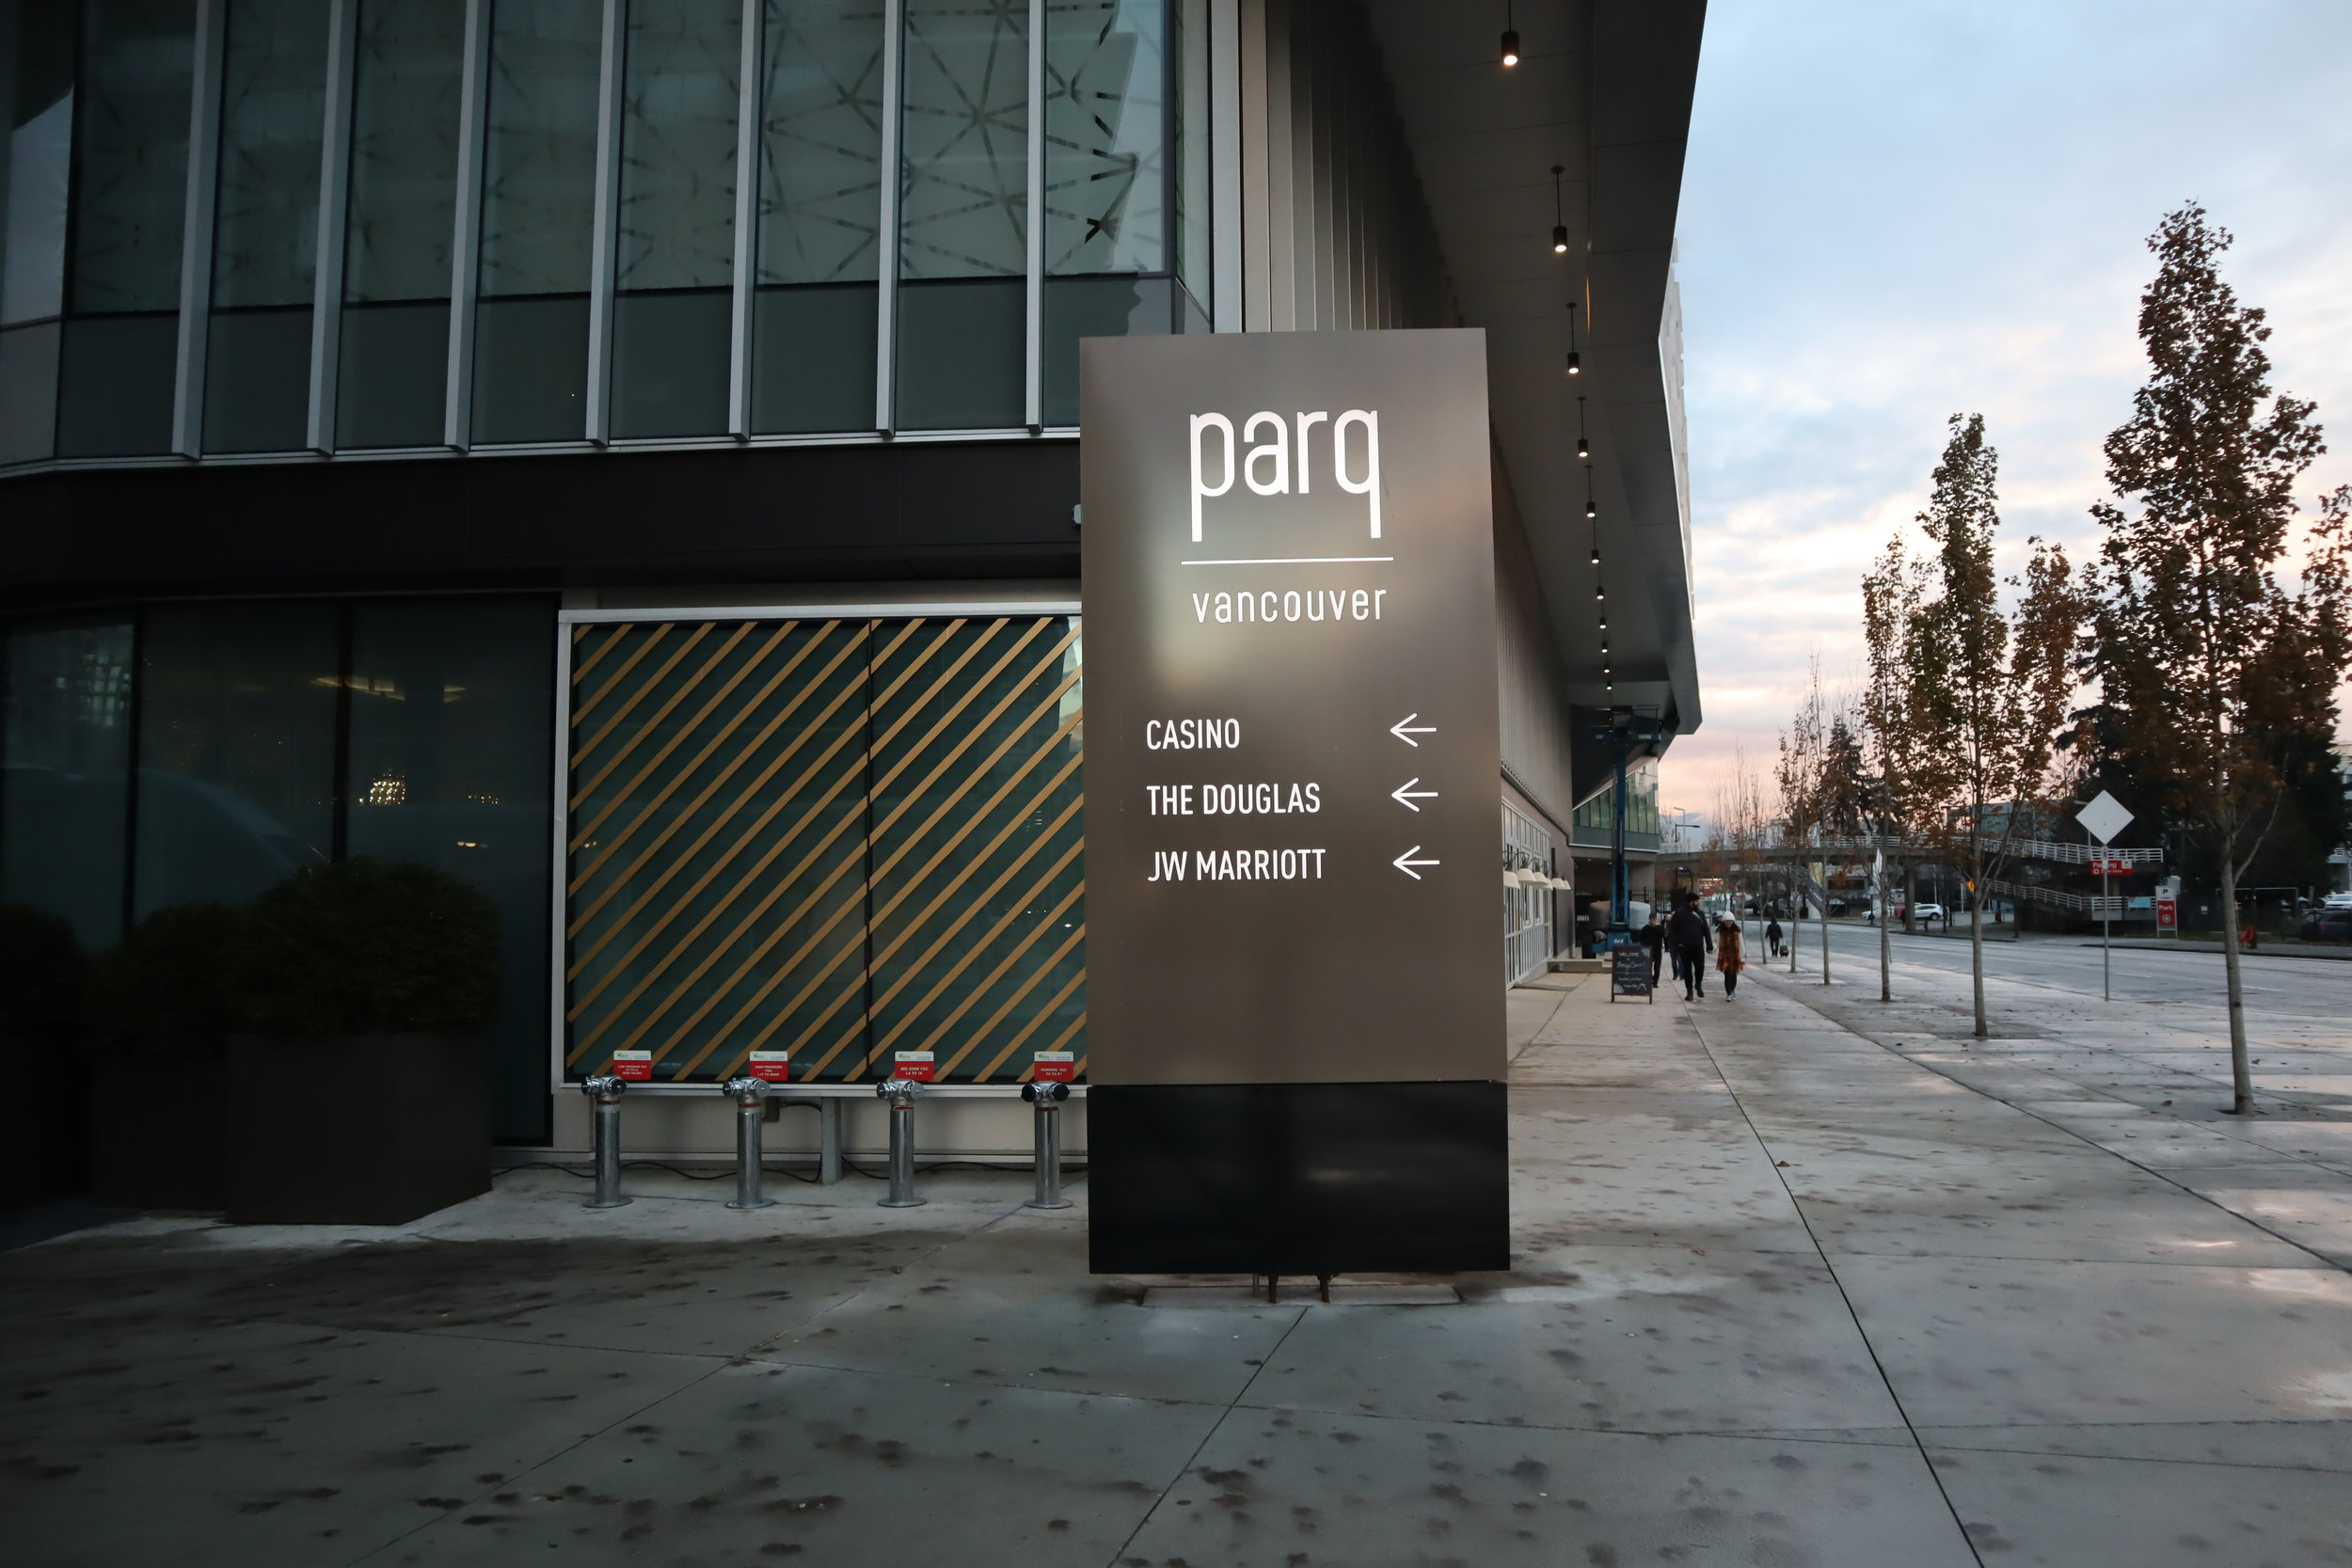 JW Marriott Parq Vancouver – Parq Vancouver sign